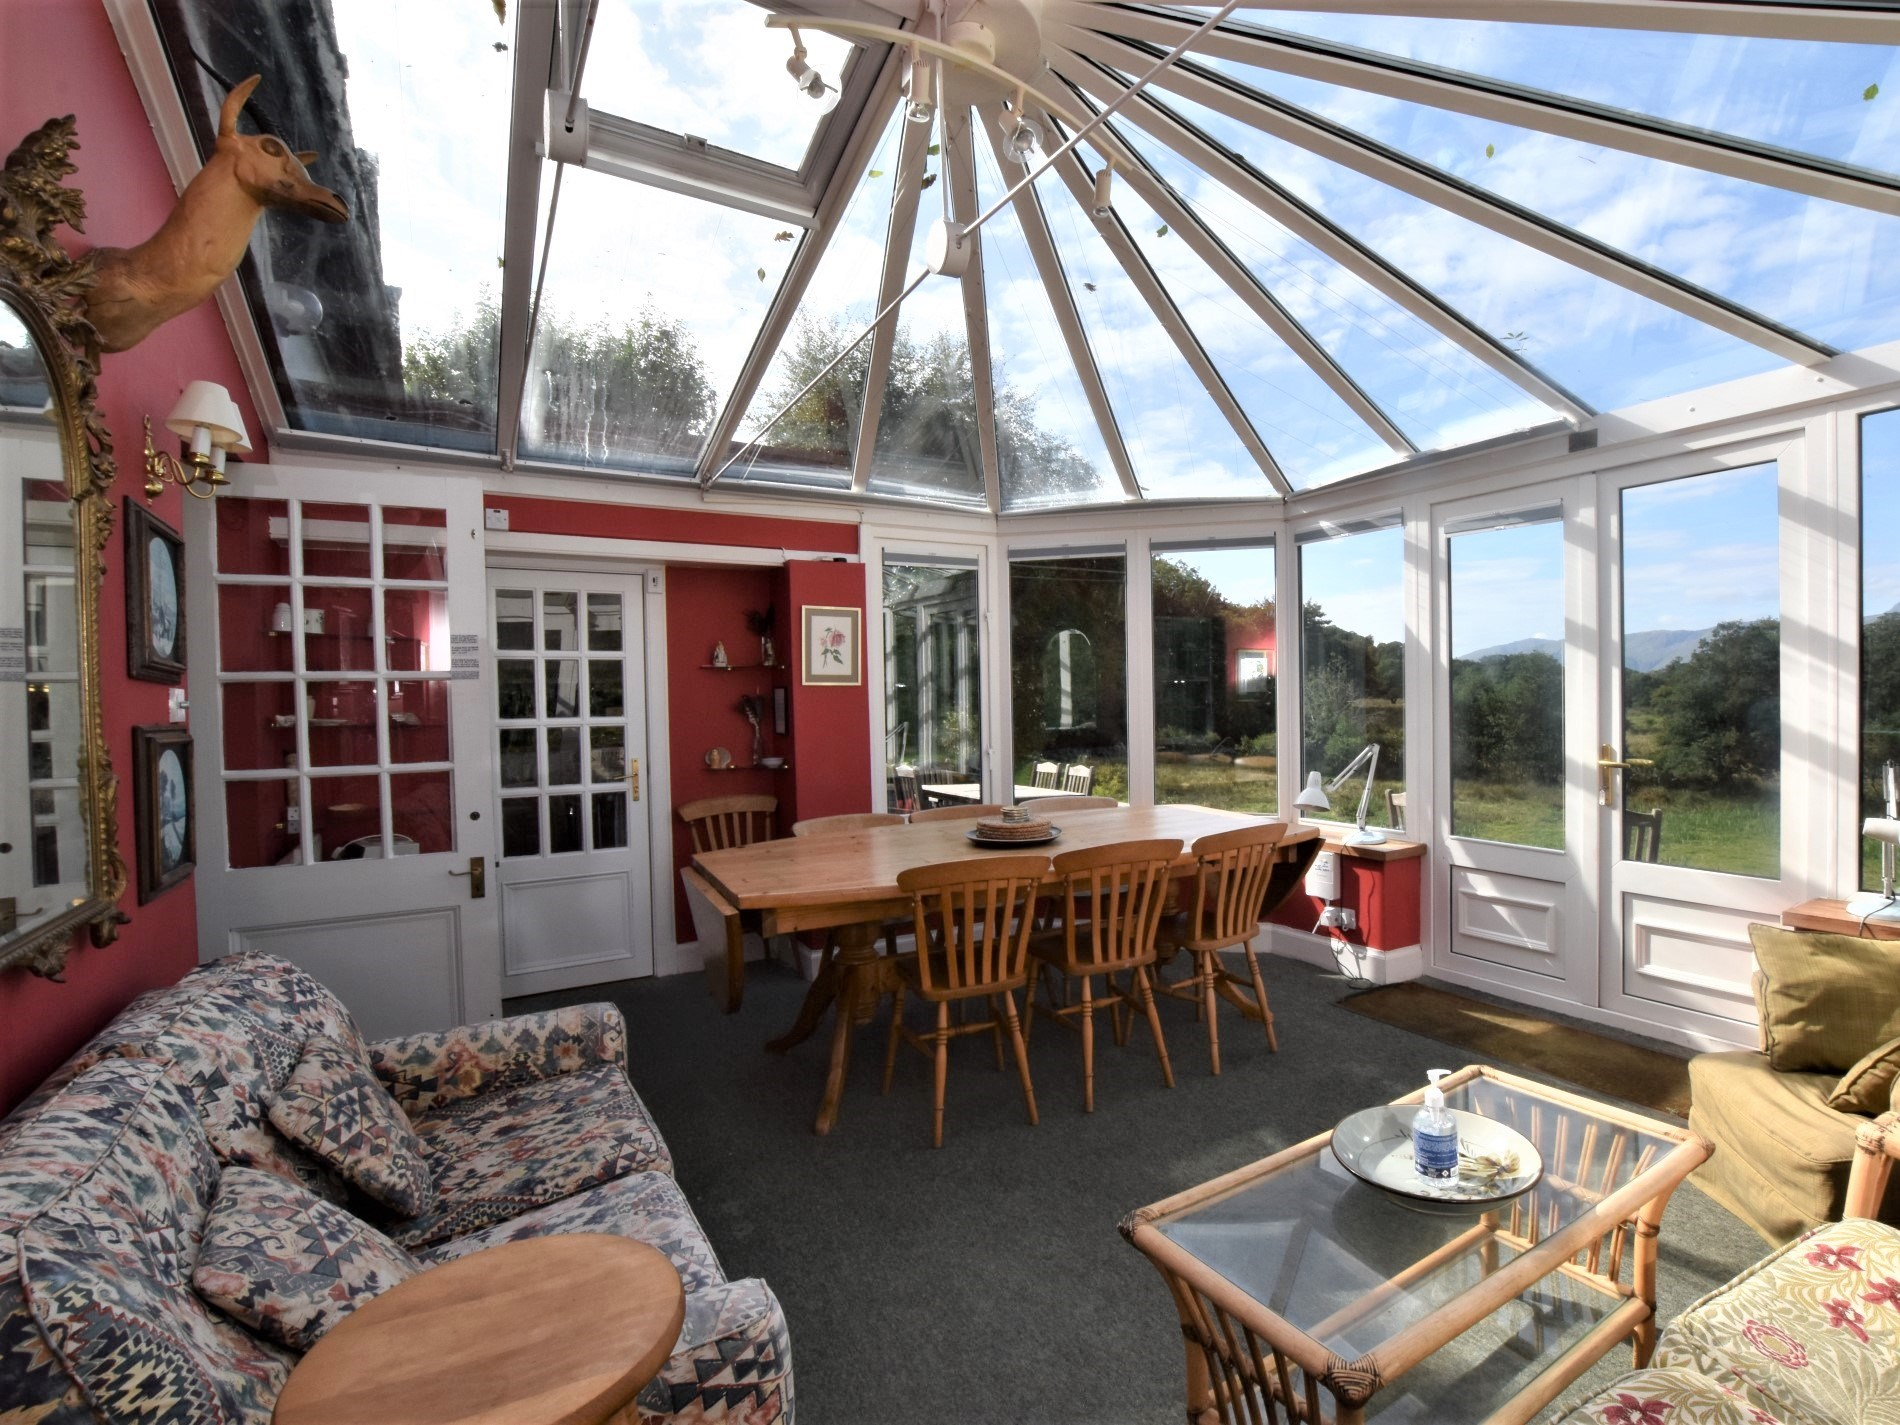 3 Bedroom Cottage in Appin, Inverness, Loch Ness & Nairn, Highlands